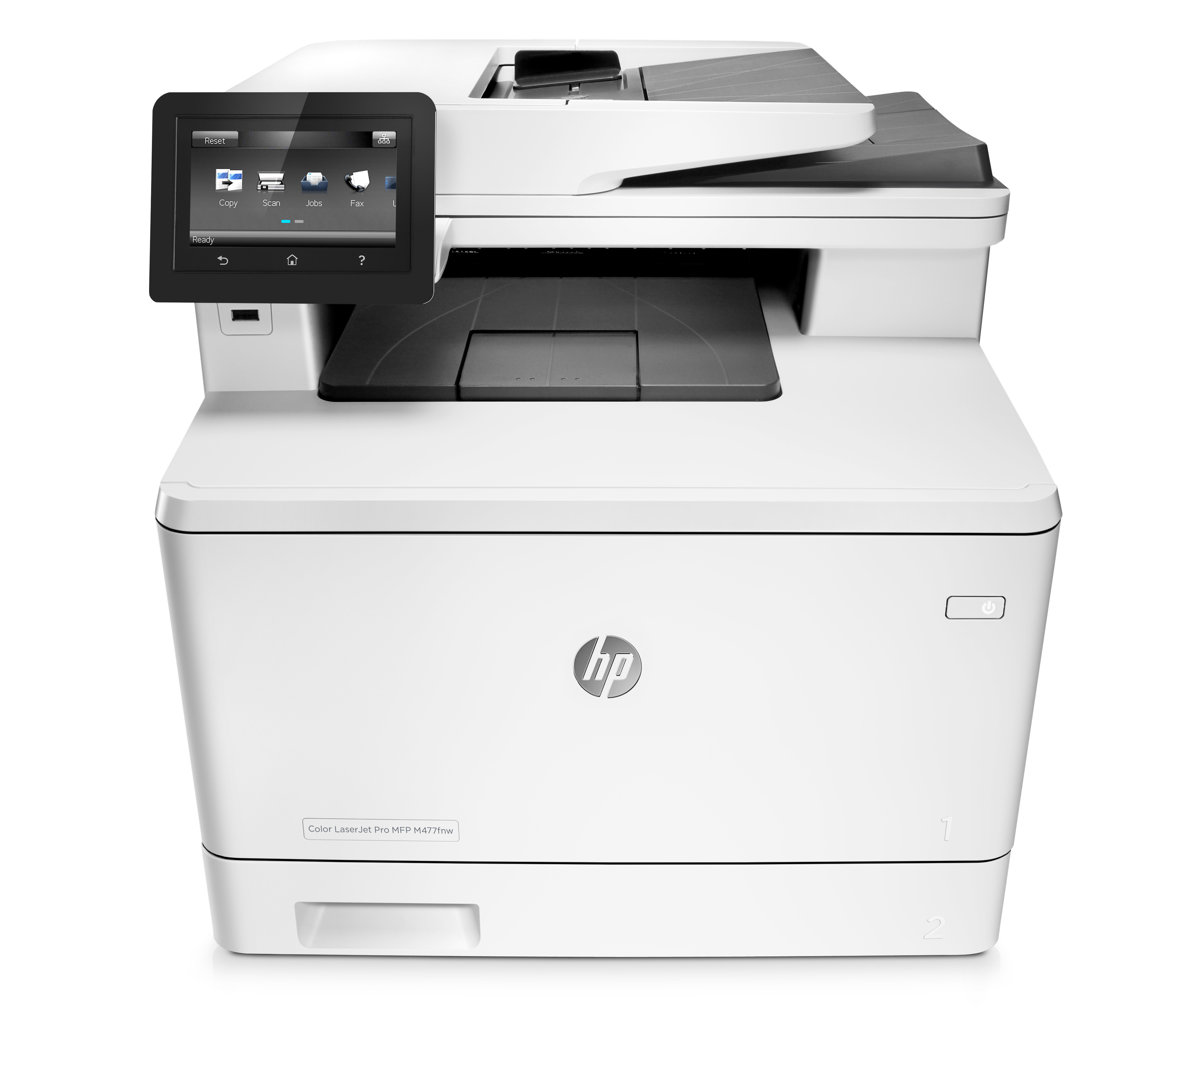 Office depot color printing costs - Hp Laserjet Pro M477fnw Wireless Color Laser Printer With Jetintelligence By Office Depot Officemax